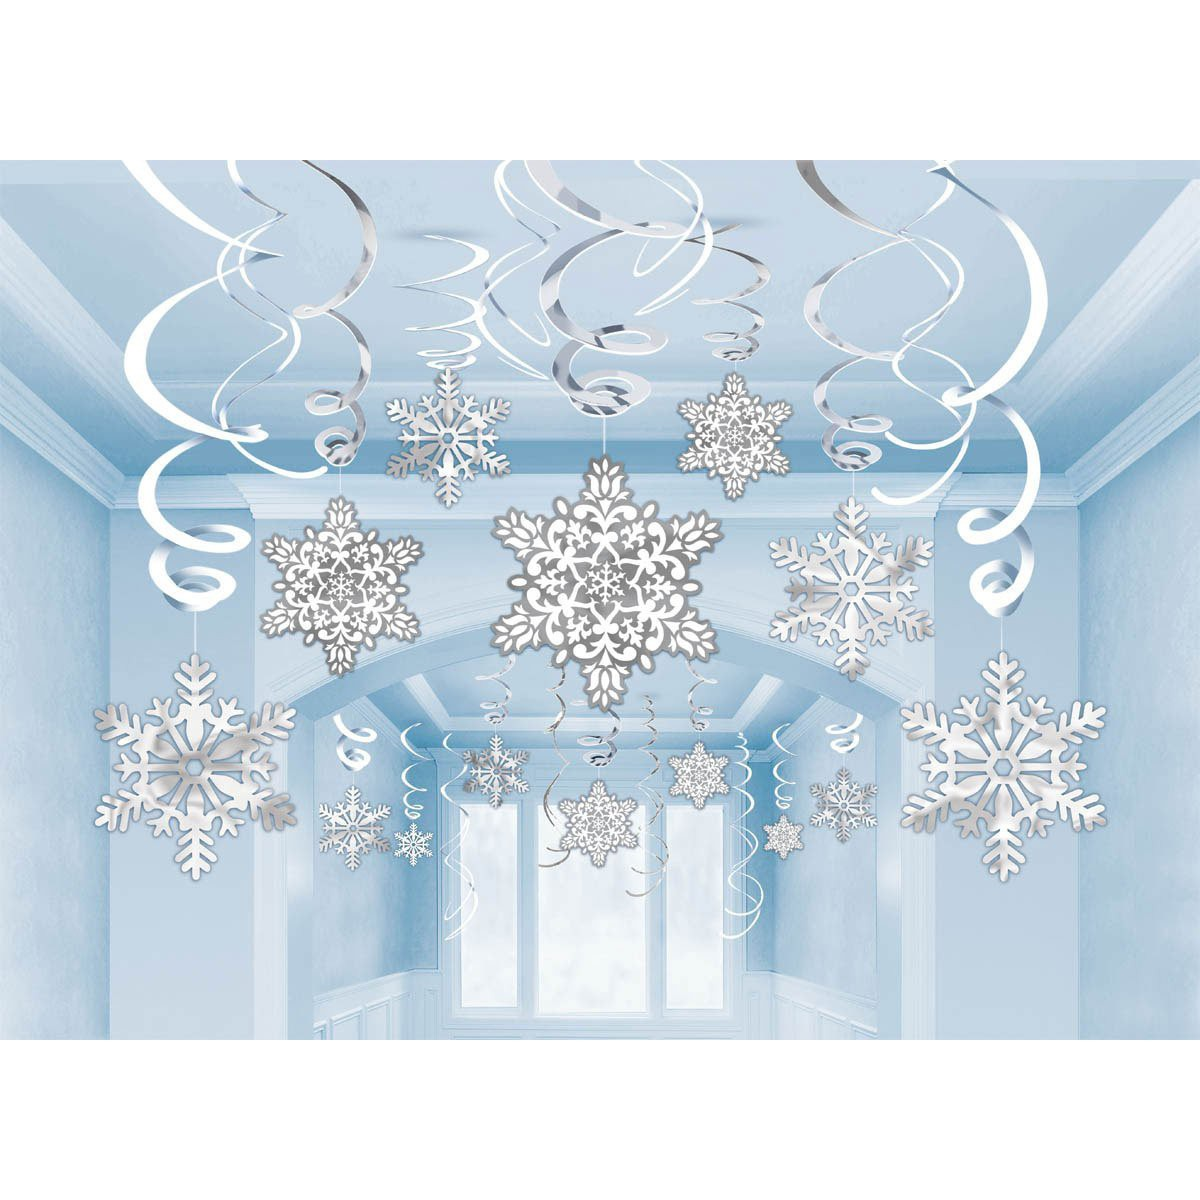 SNOWFLAKES SWIRL DECORATIONS WHITE & SILVER - PACK OF 30